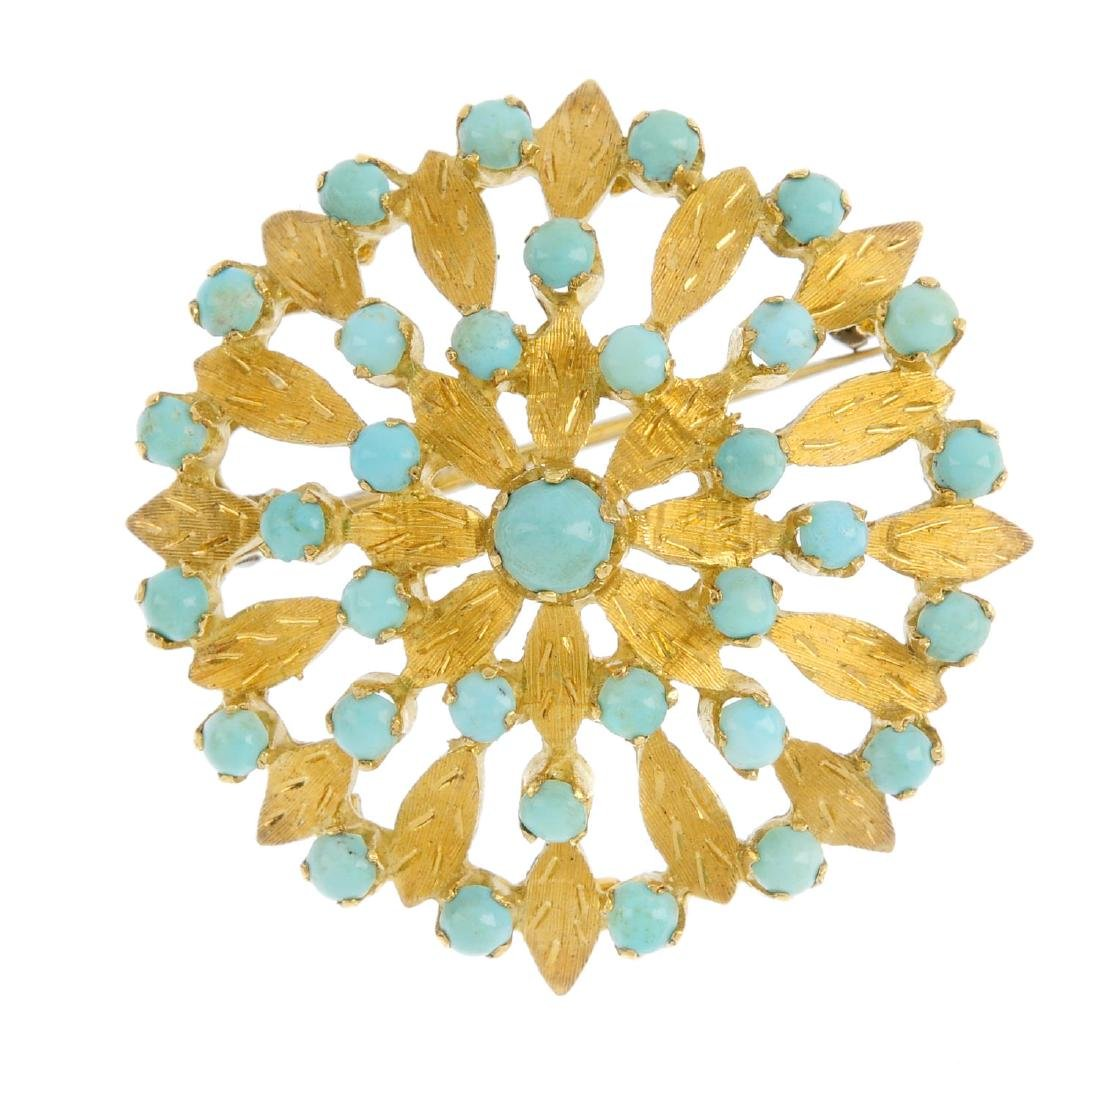 A turquoise brooch. Designed as a circular turquoise